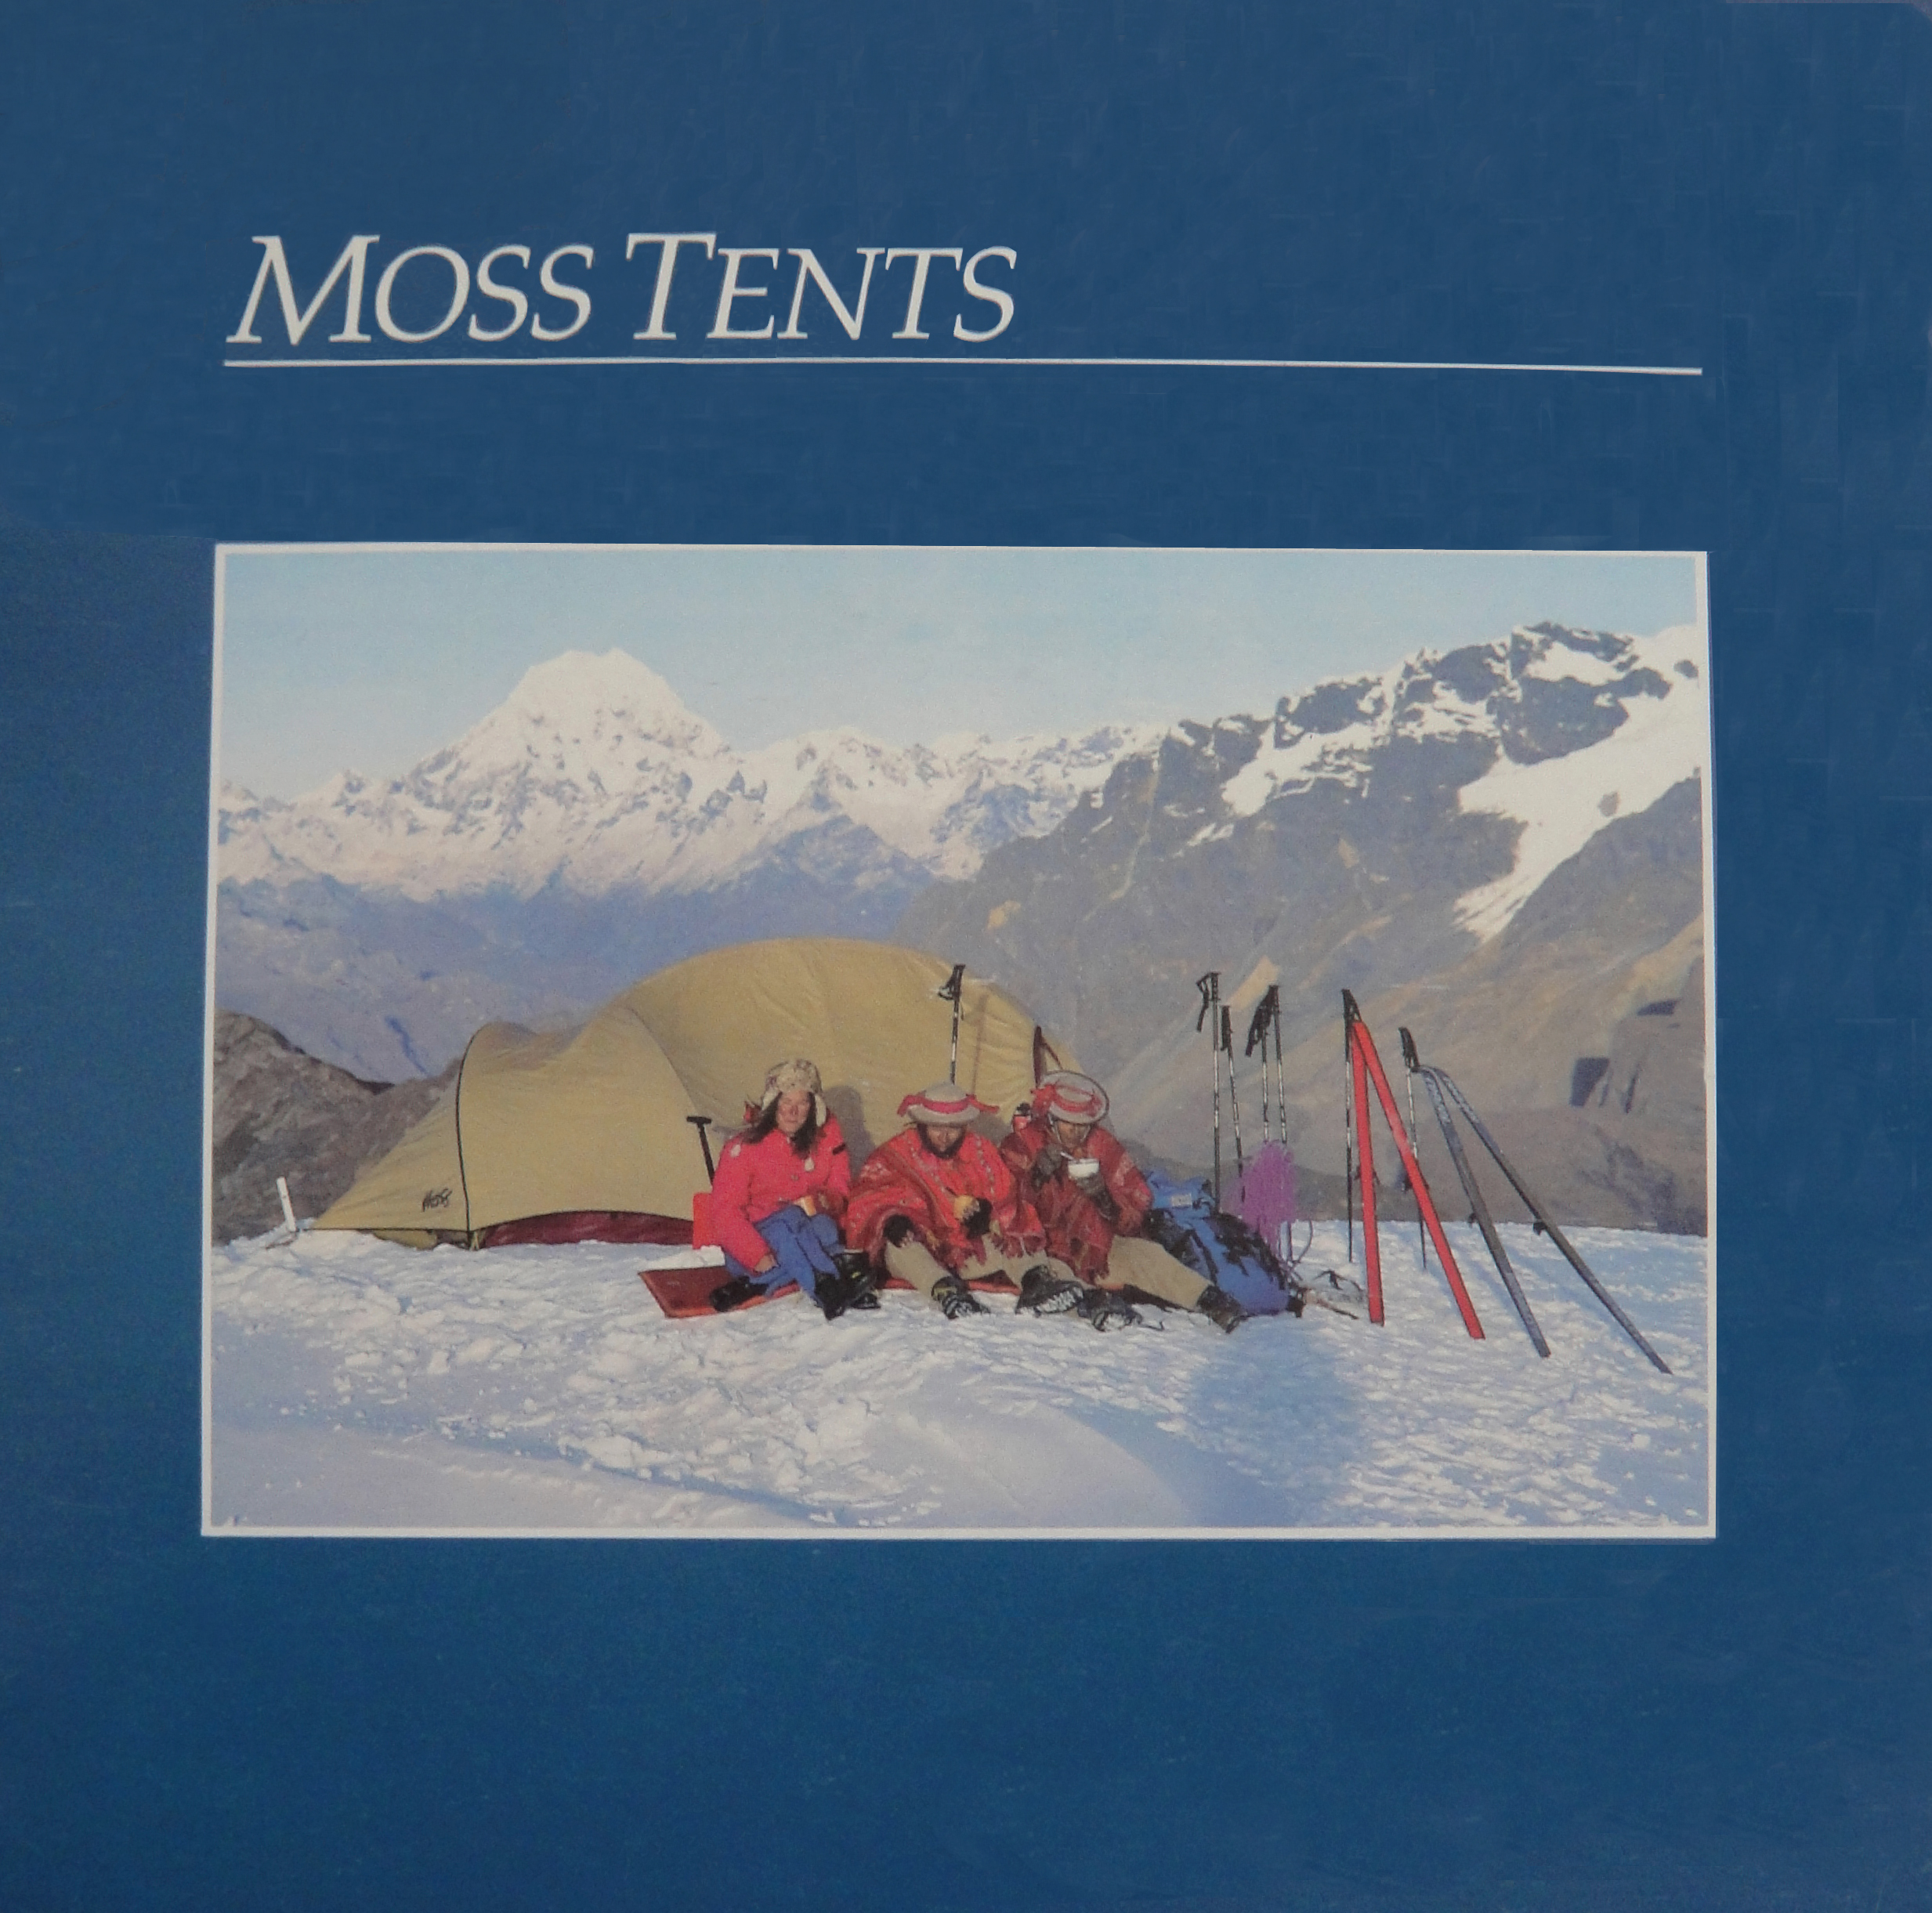 A Happy New Year from Bill Moss Tents